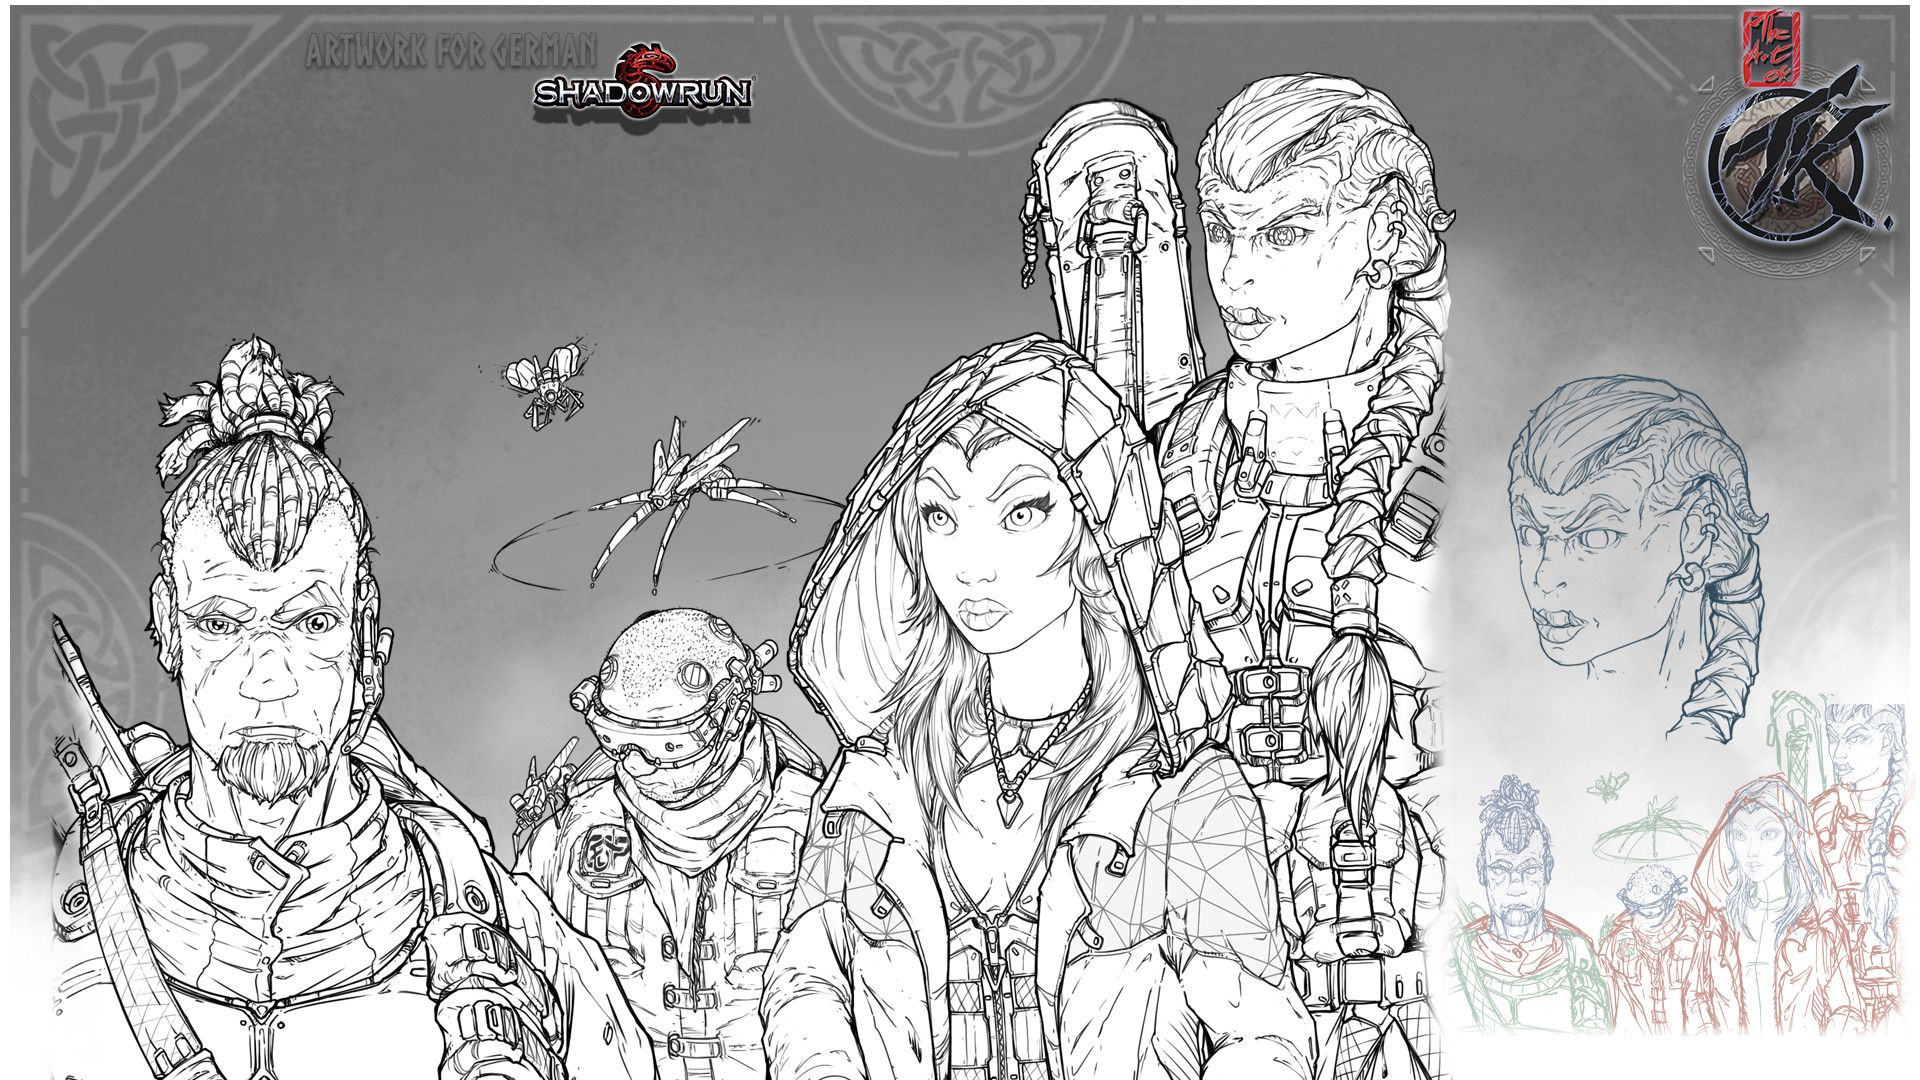 SHADOWRUN 5 [GER Edition] Runner Group (With images